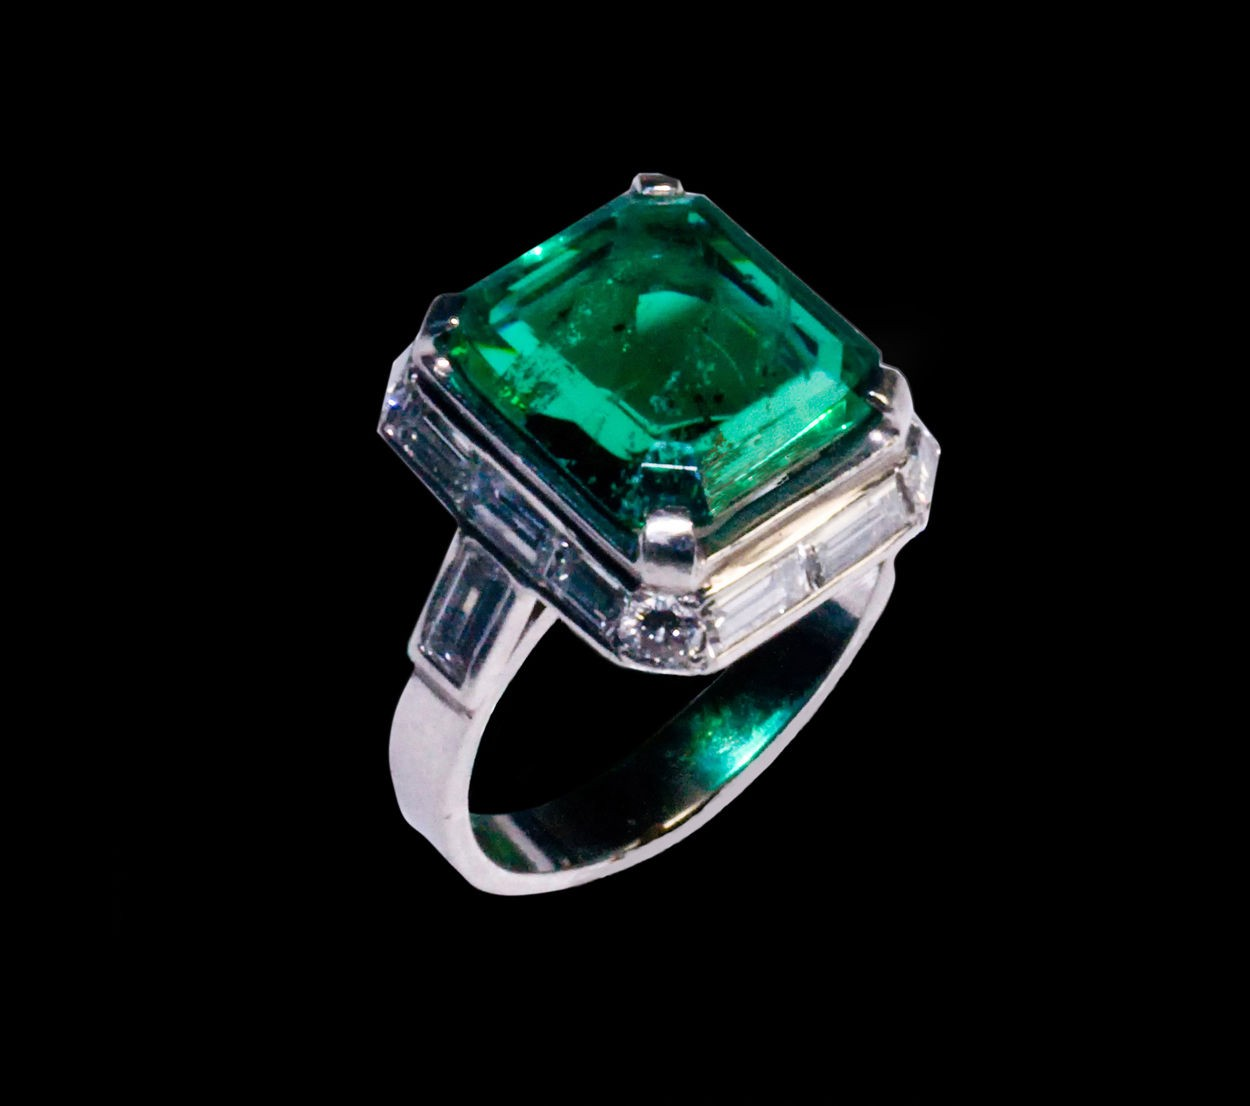 Emerald 5.25 ct. Ring in Platinum with Diamonds